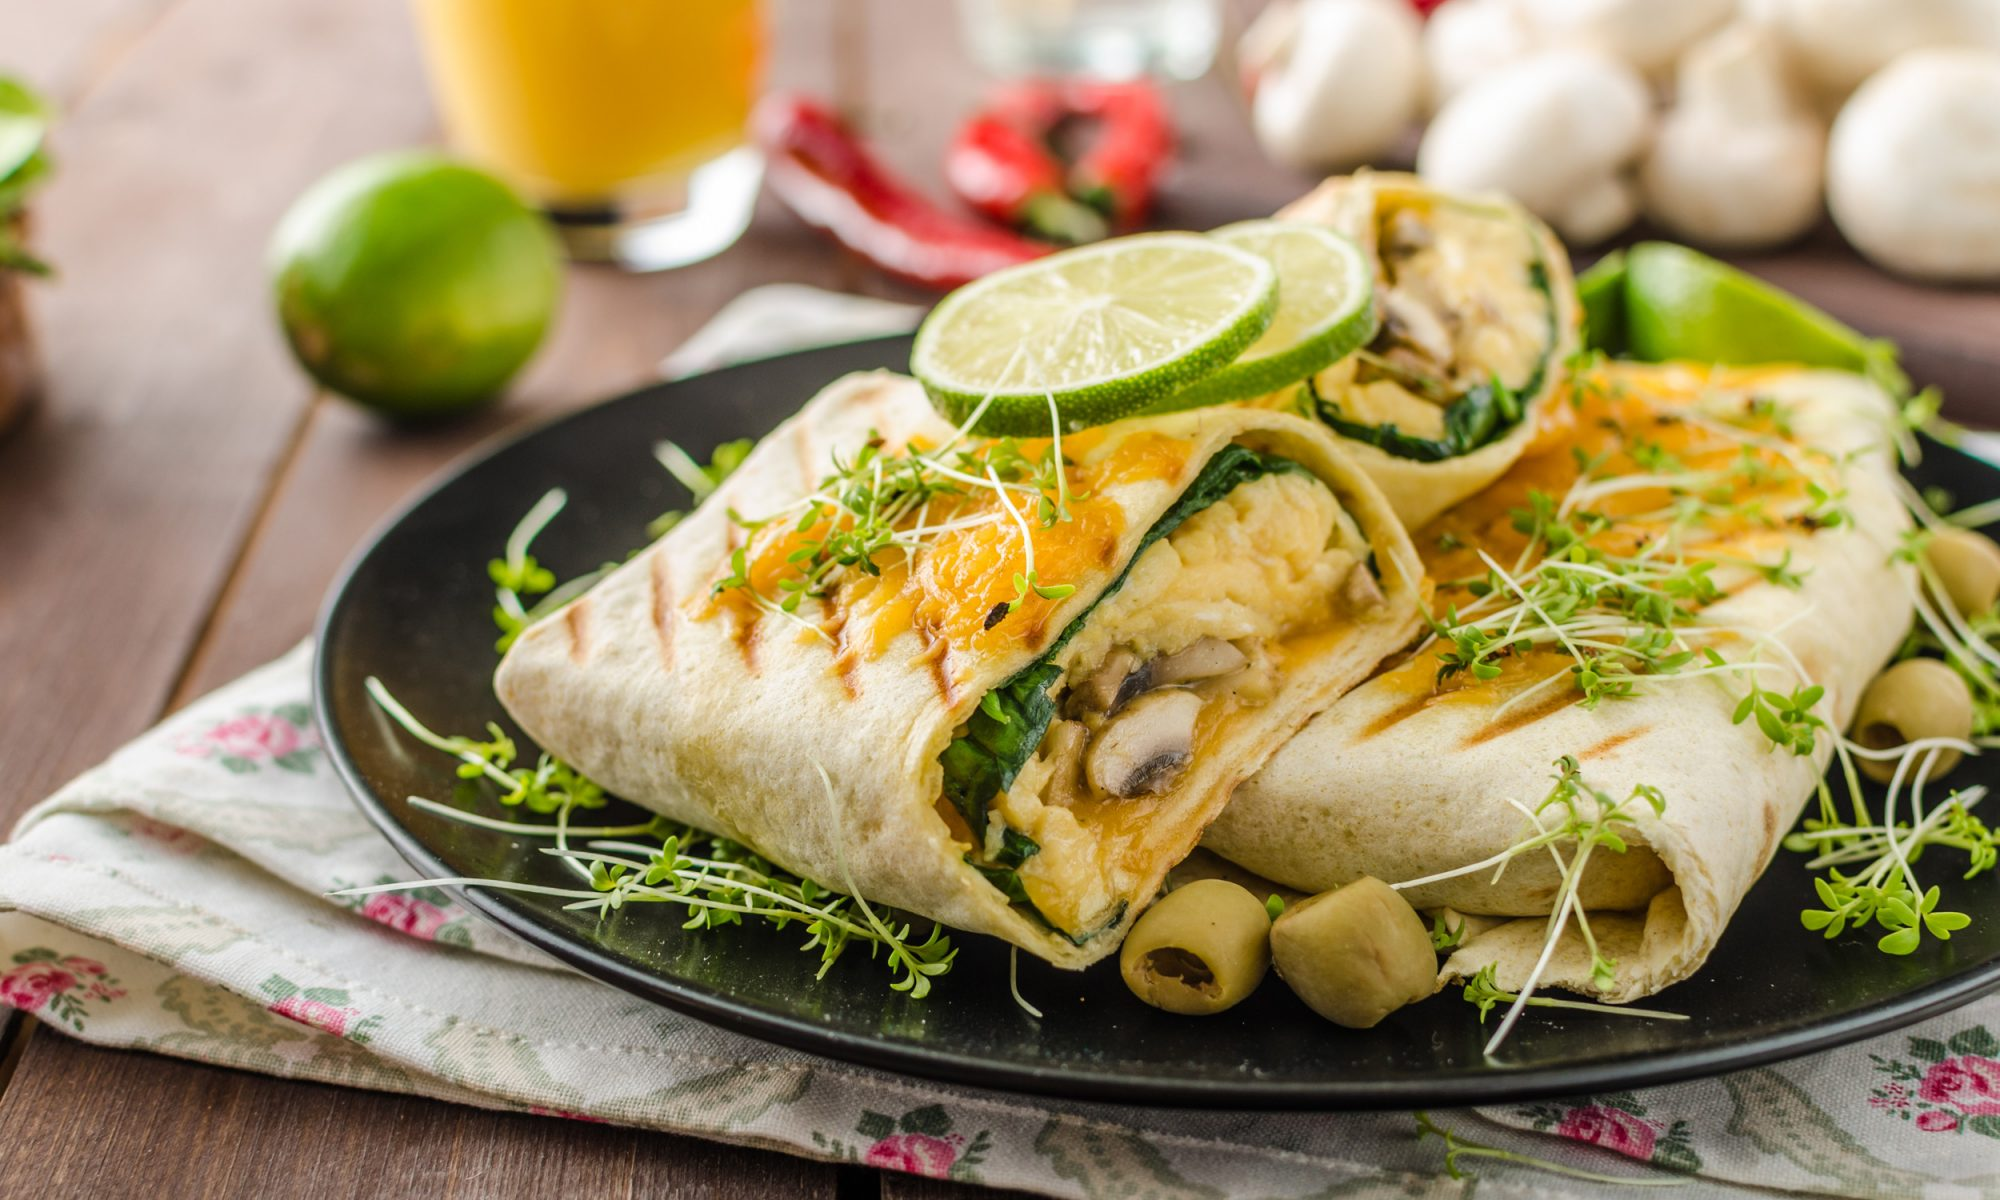 EC: Make-Ahead Breakfast Burritos Are What Stand Between You and Despair This Winter